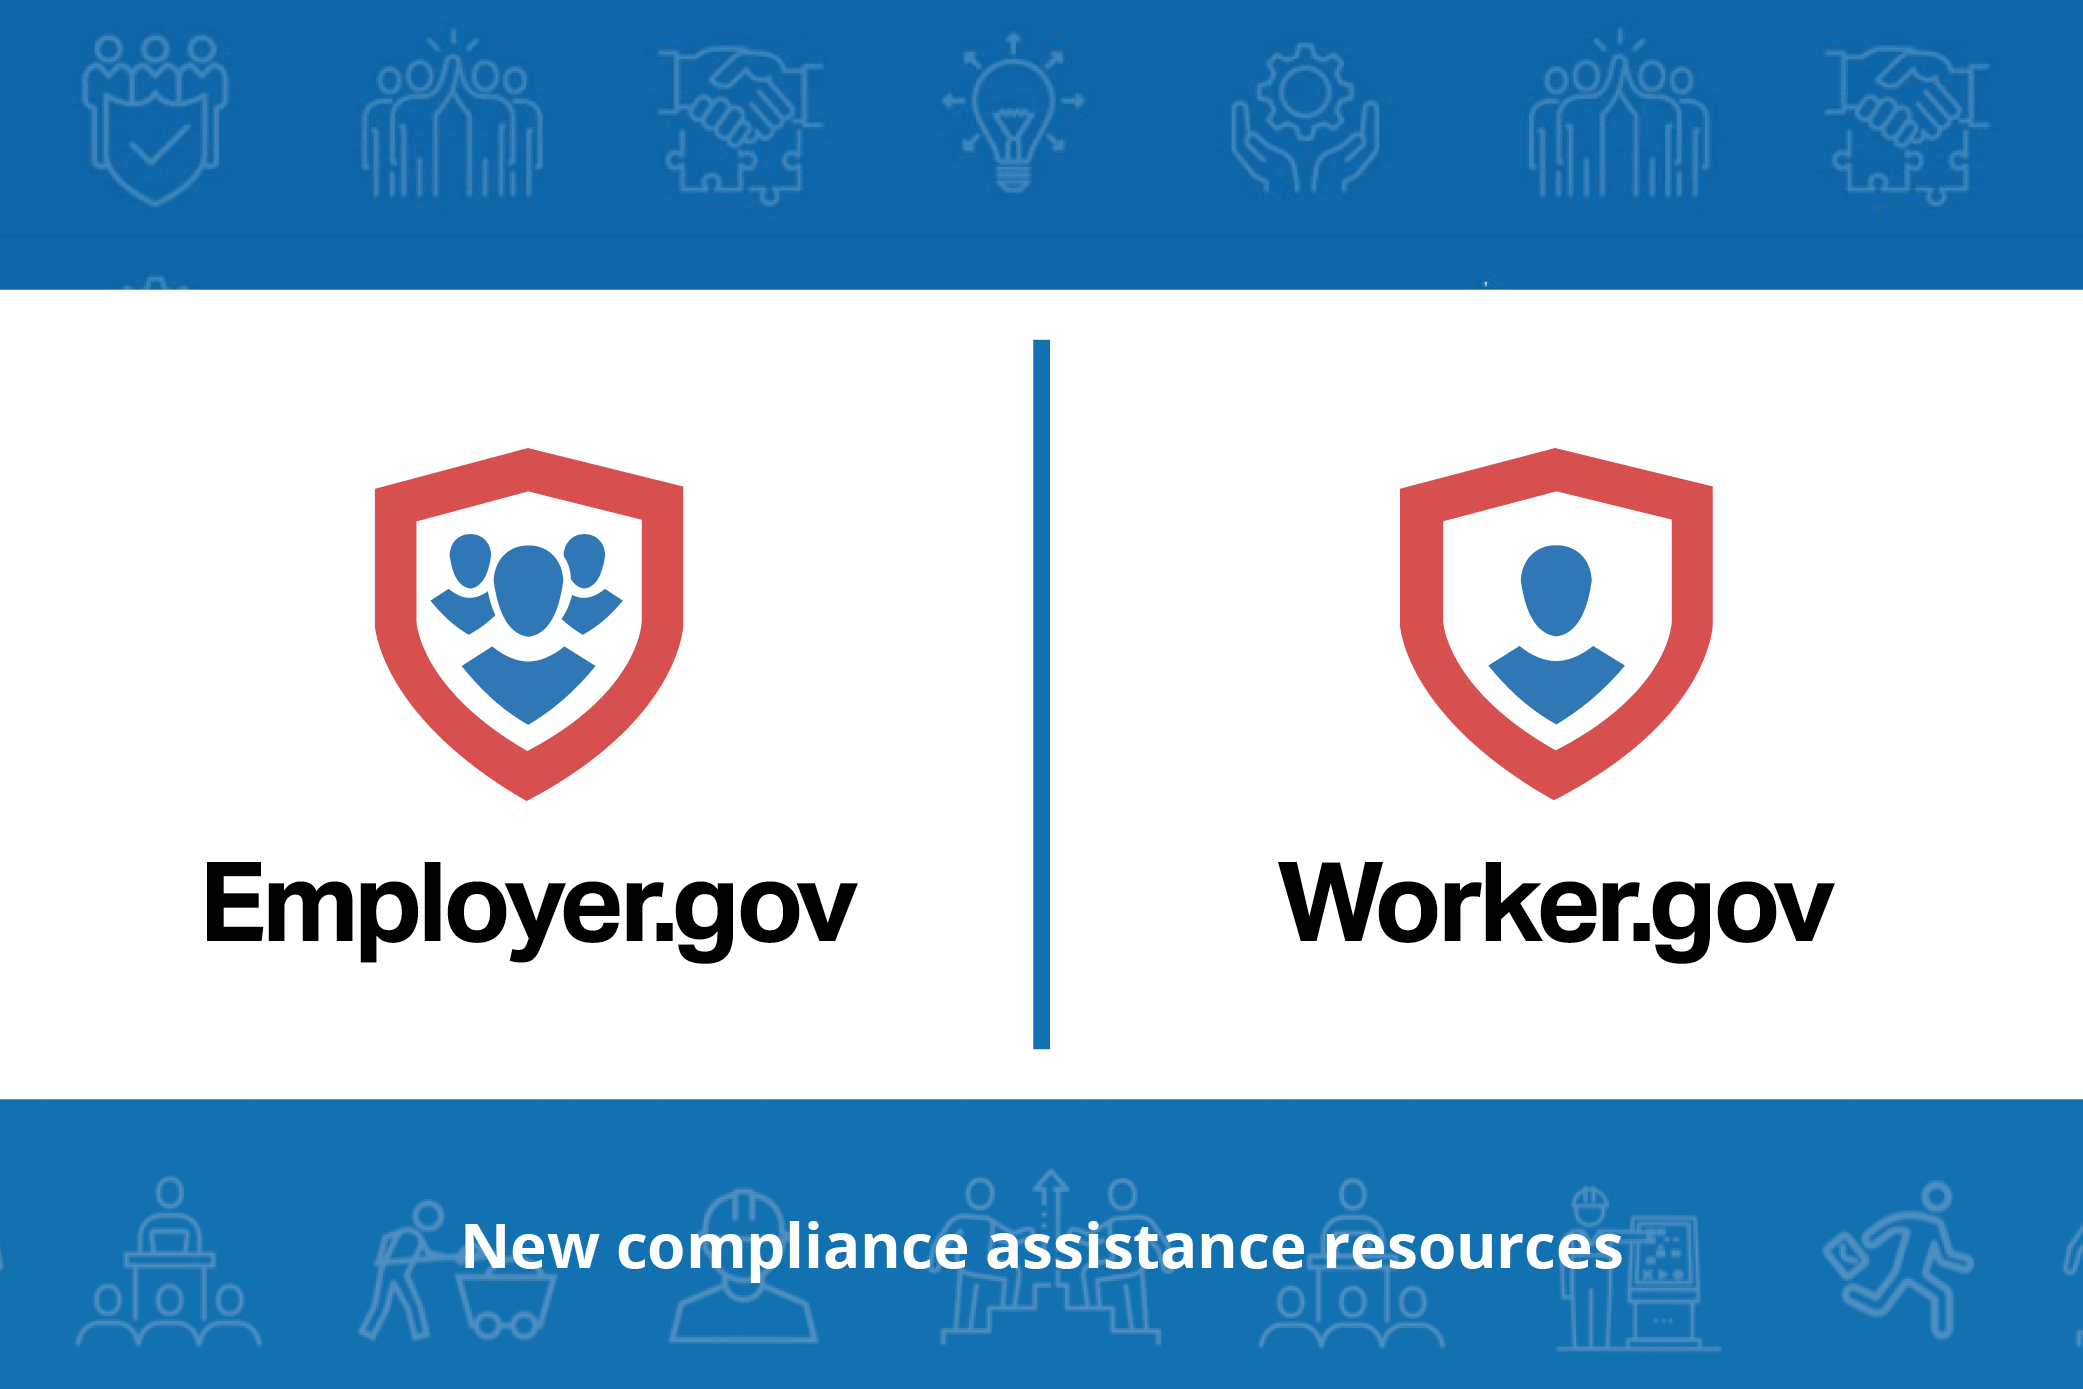 employer.gov and worker.gov logos